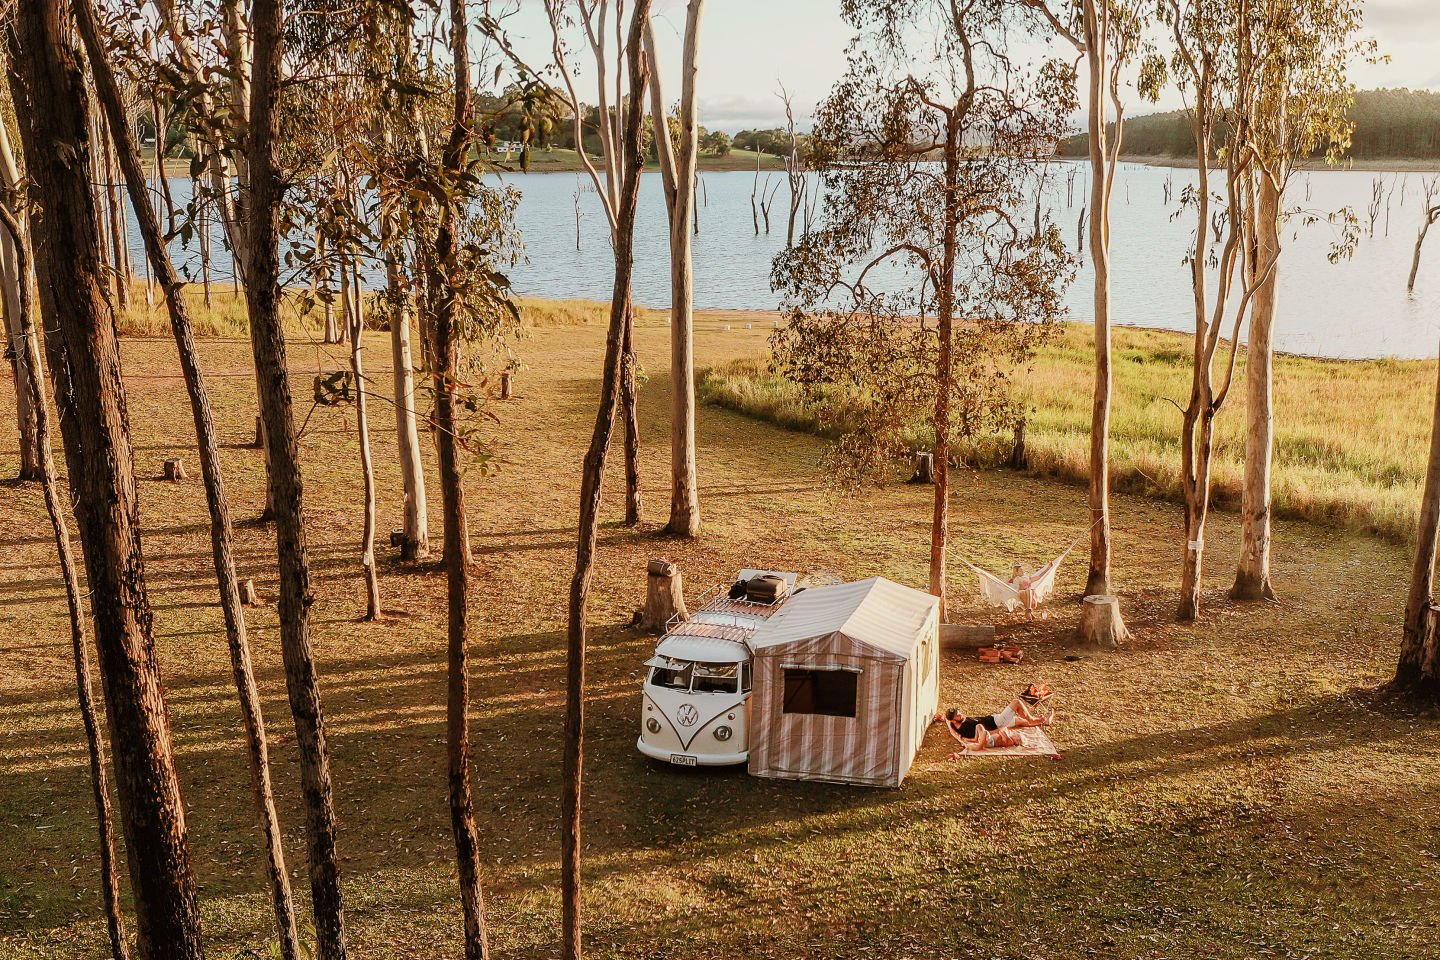 Campervan by the Water